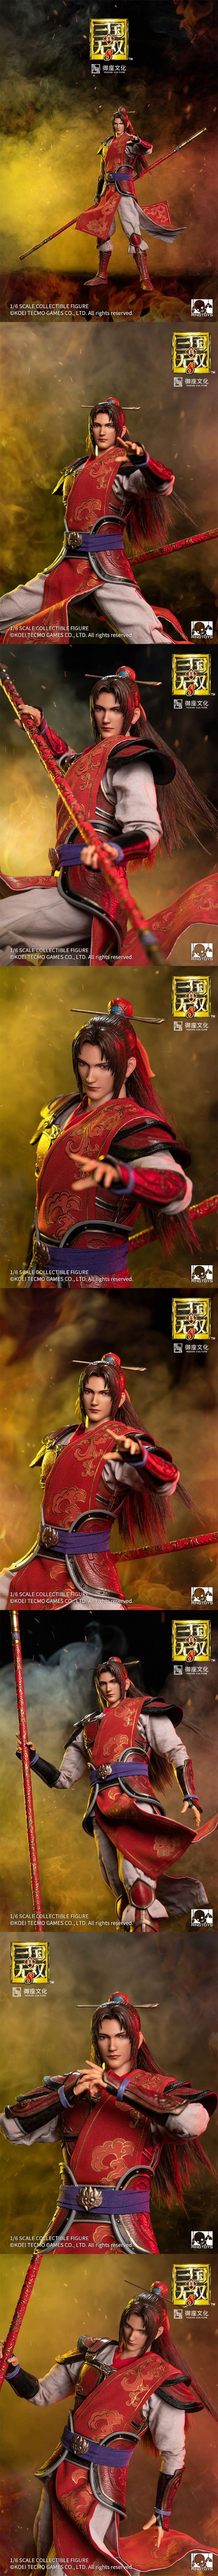 warrior - NEW PRODUCT: Ring Toys: 1/6 Three Kingdoms Warriors - Zhou Yu action figure 09350910